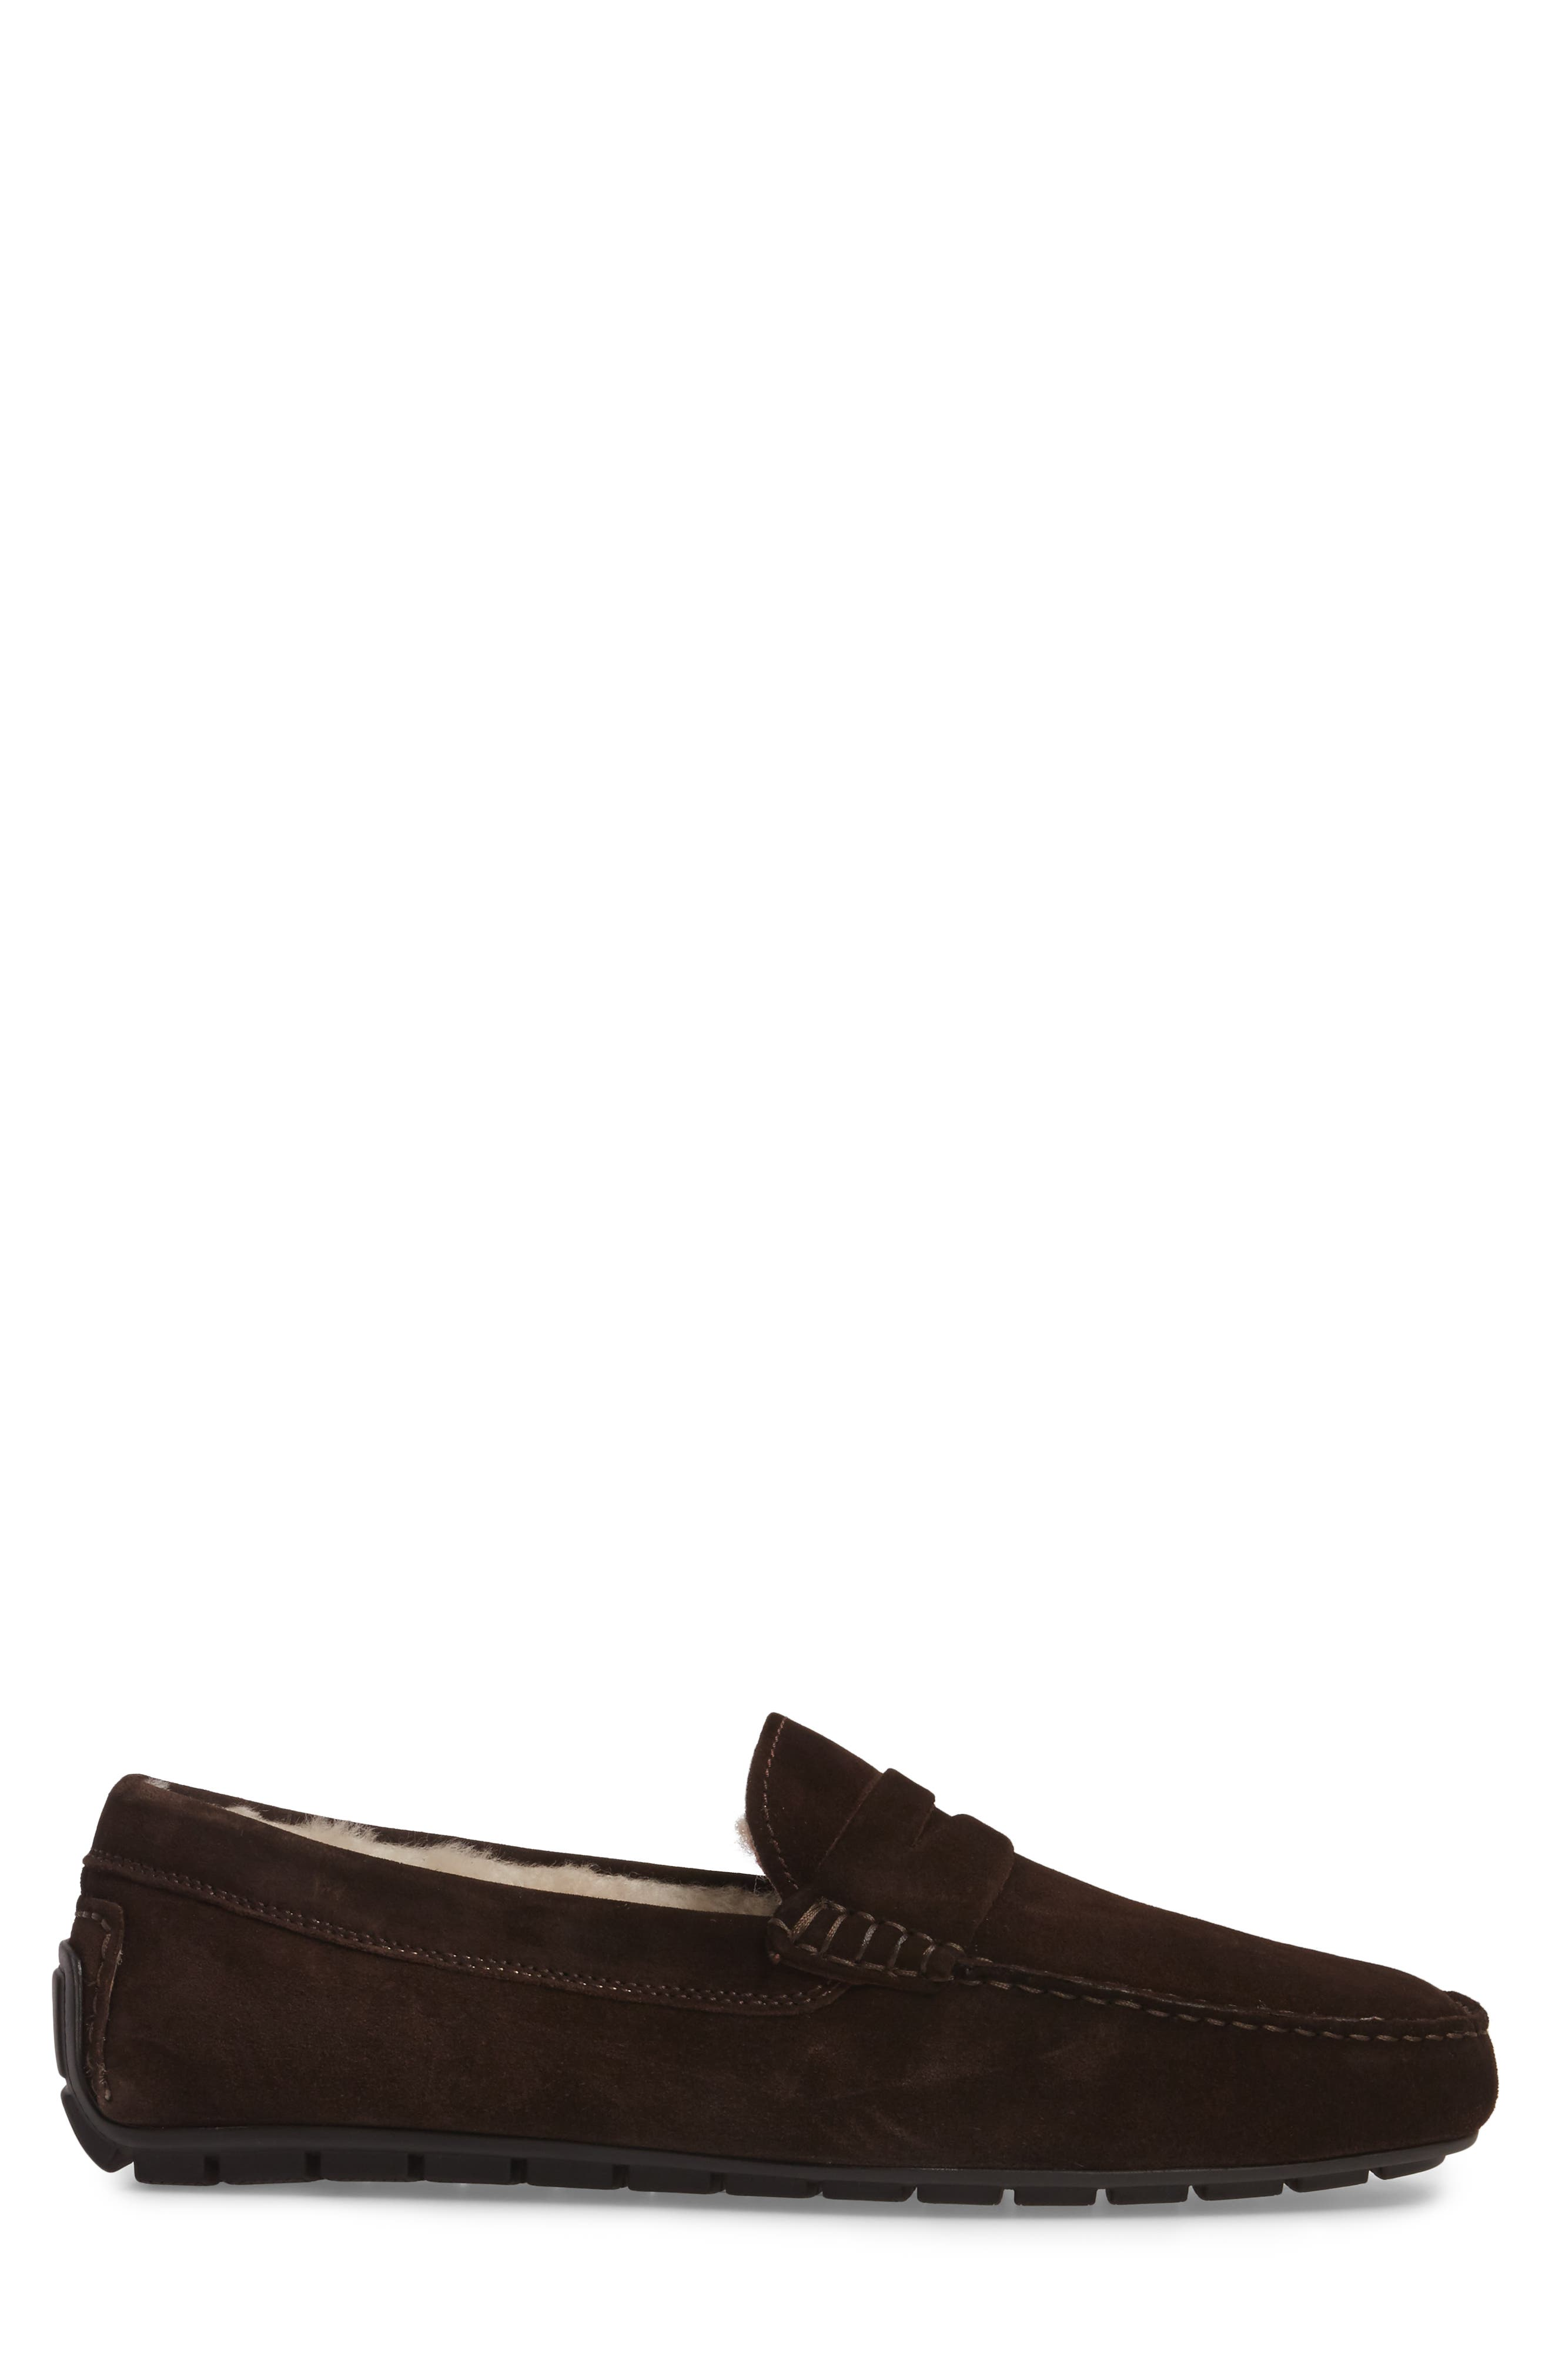 Norse Penny Loafer with Genuine Shearling,                             Alternate thumbnail 6, color,